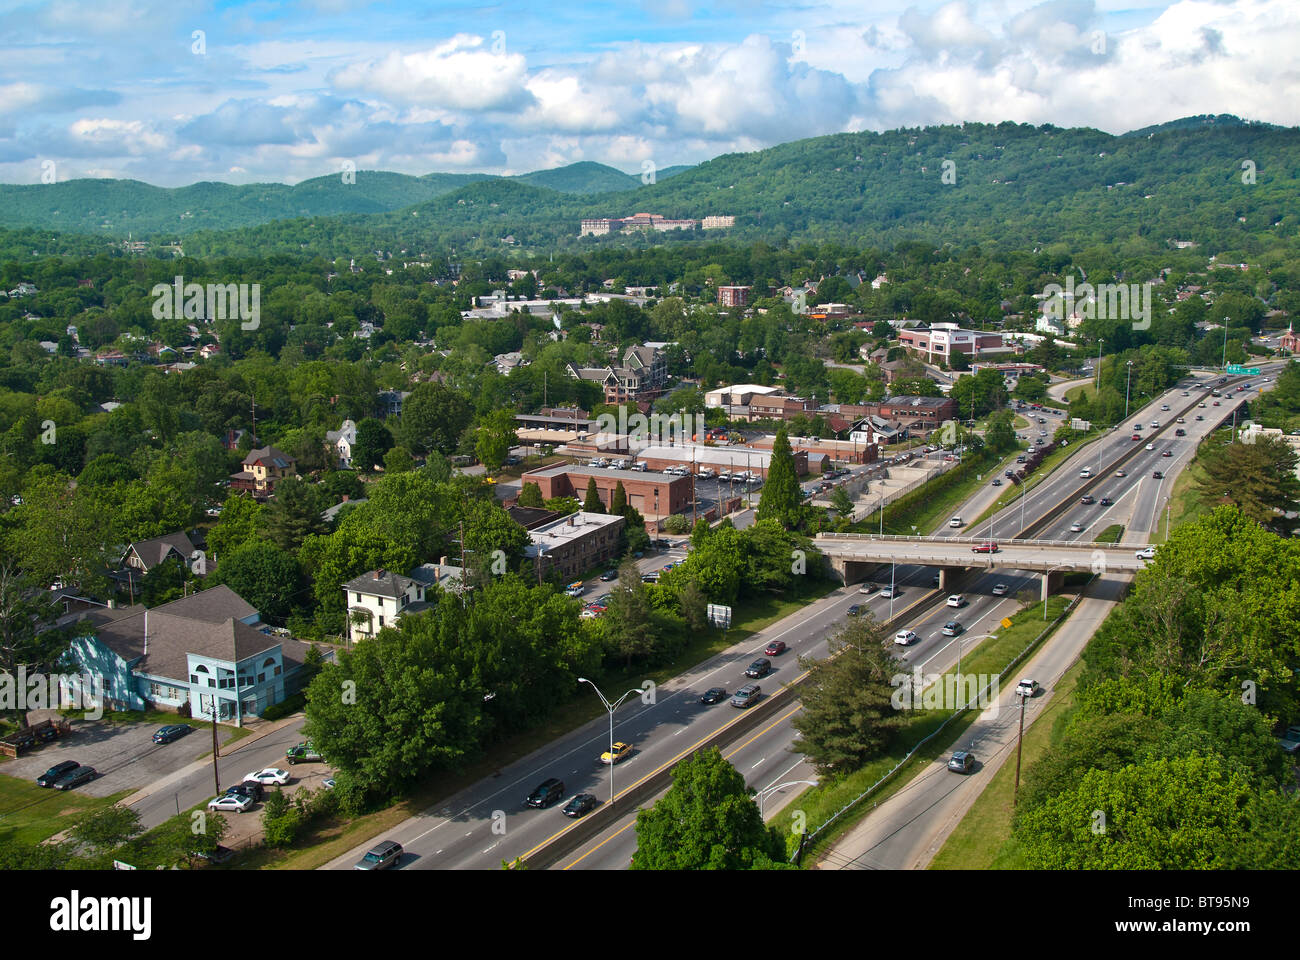 Panoramica della I-240 freeway e i quartieri di Asheville, North Carolina, STATI UNITI D'AMERICA Immagini Stock